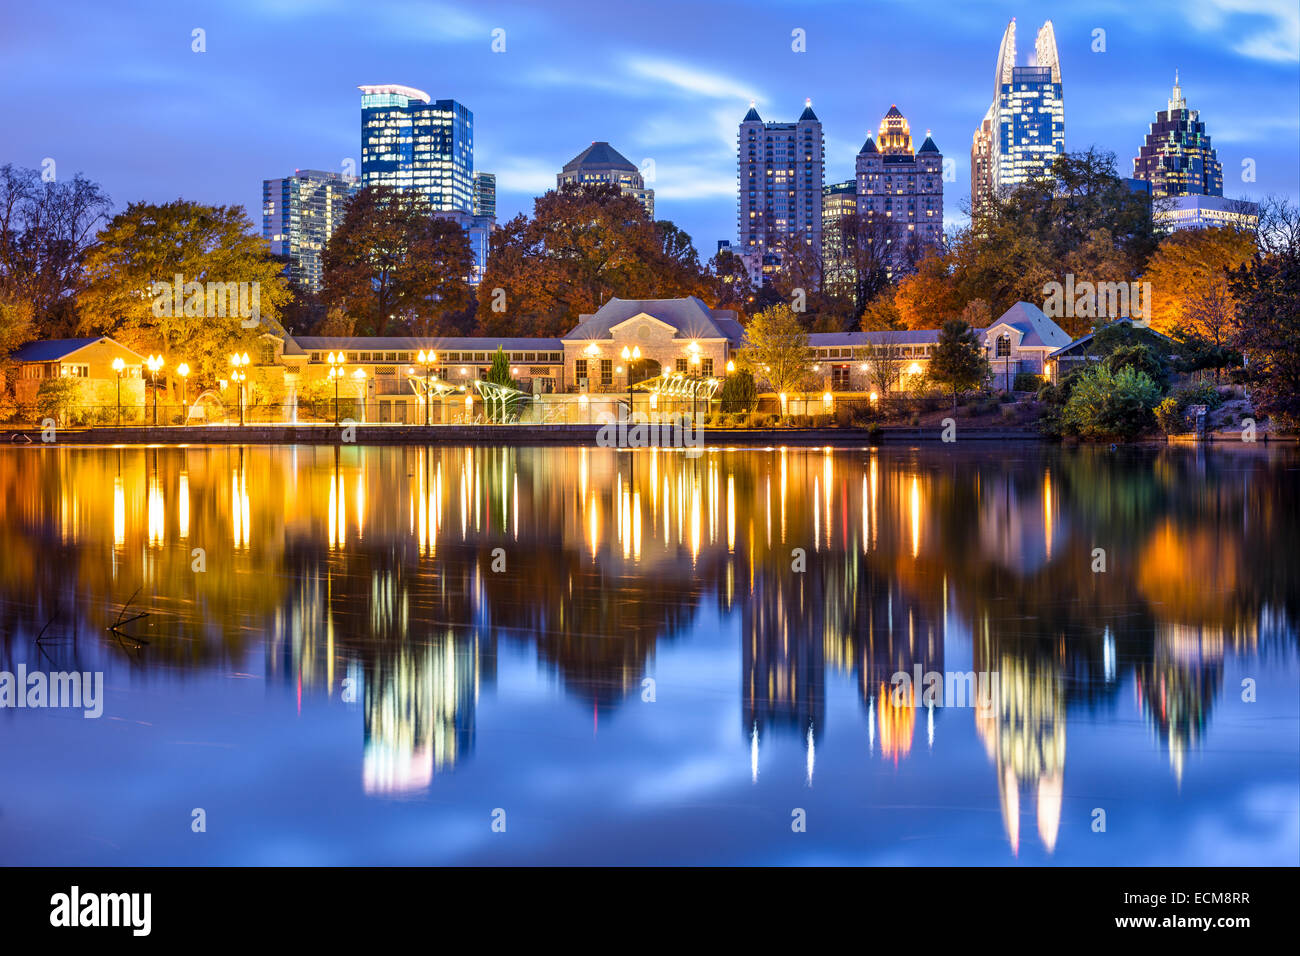 Atlanta, Georgia, USA downtown city skyline at Piedmont Park's Lake Meer. - Stock Image